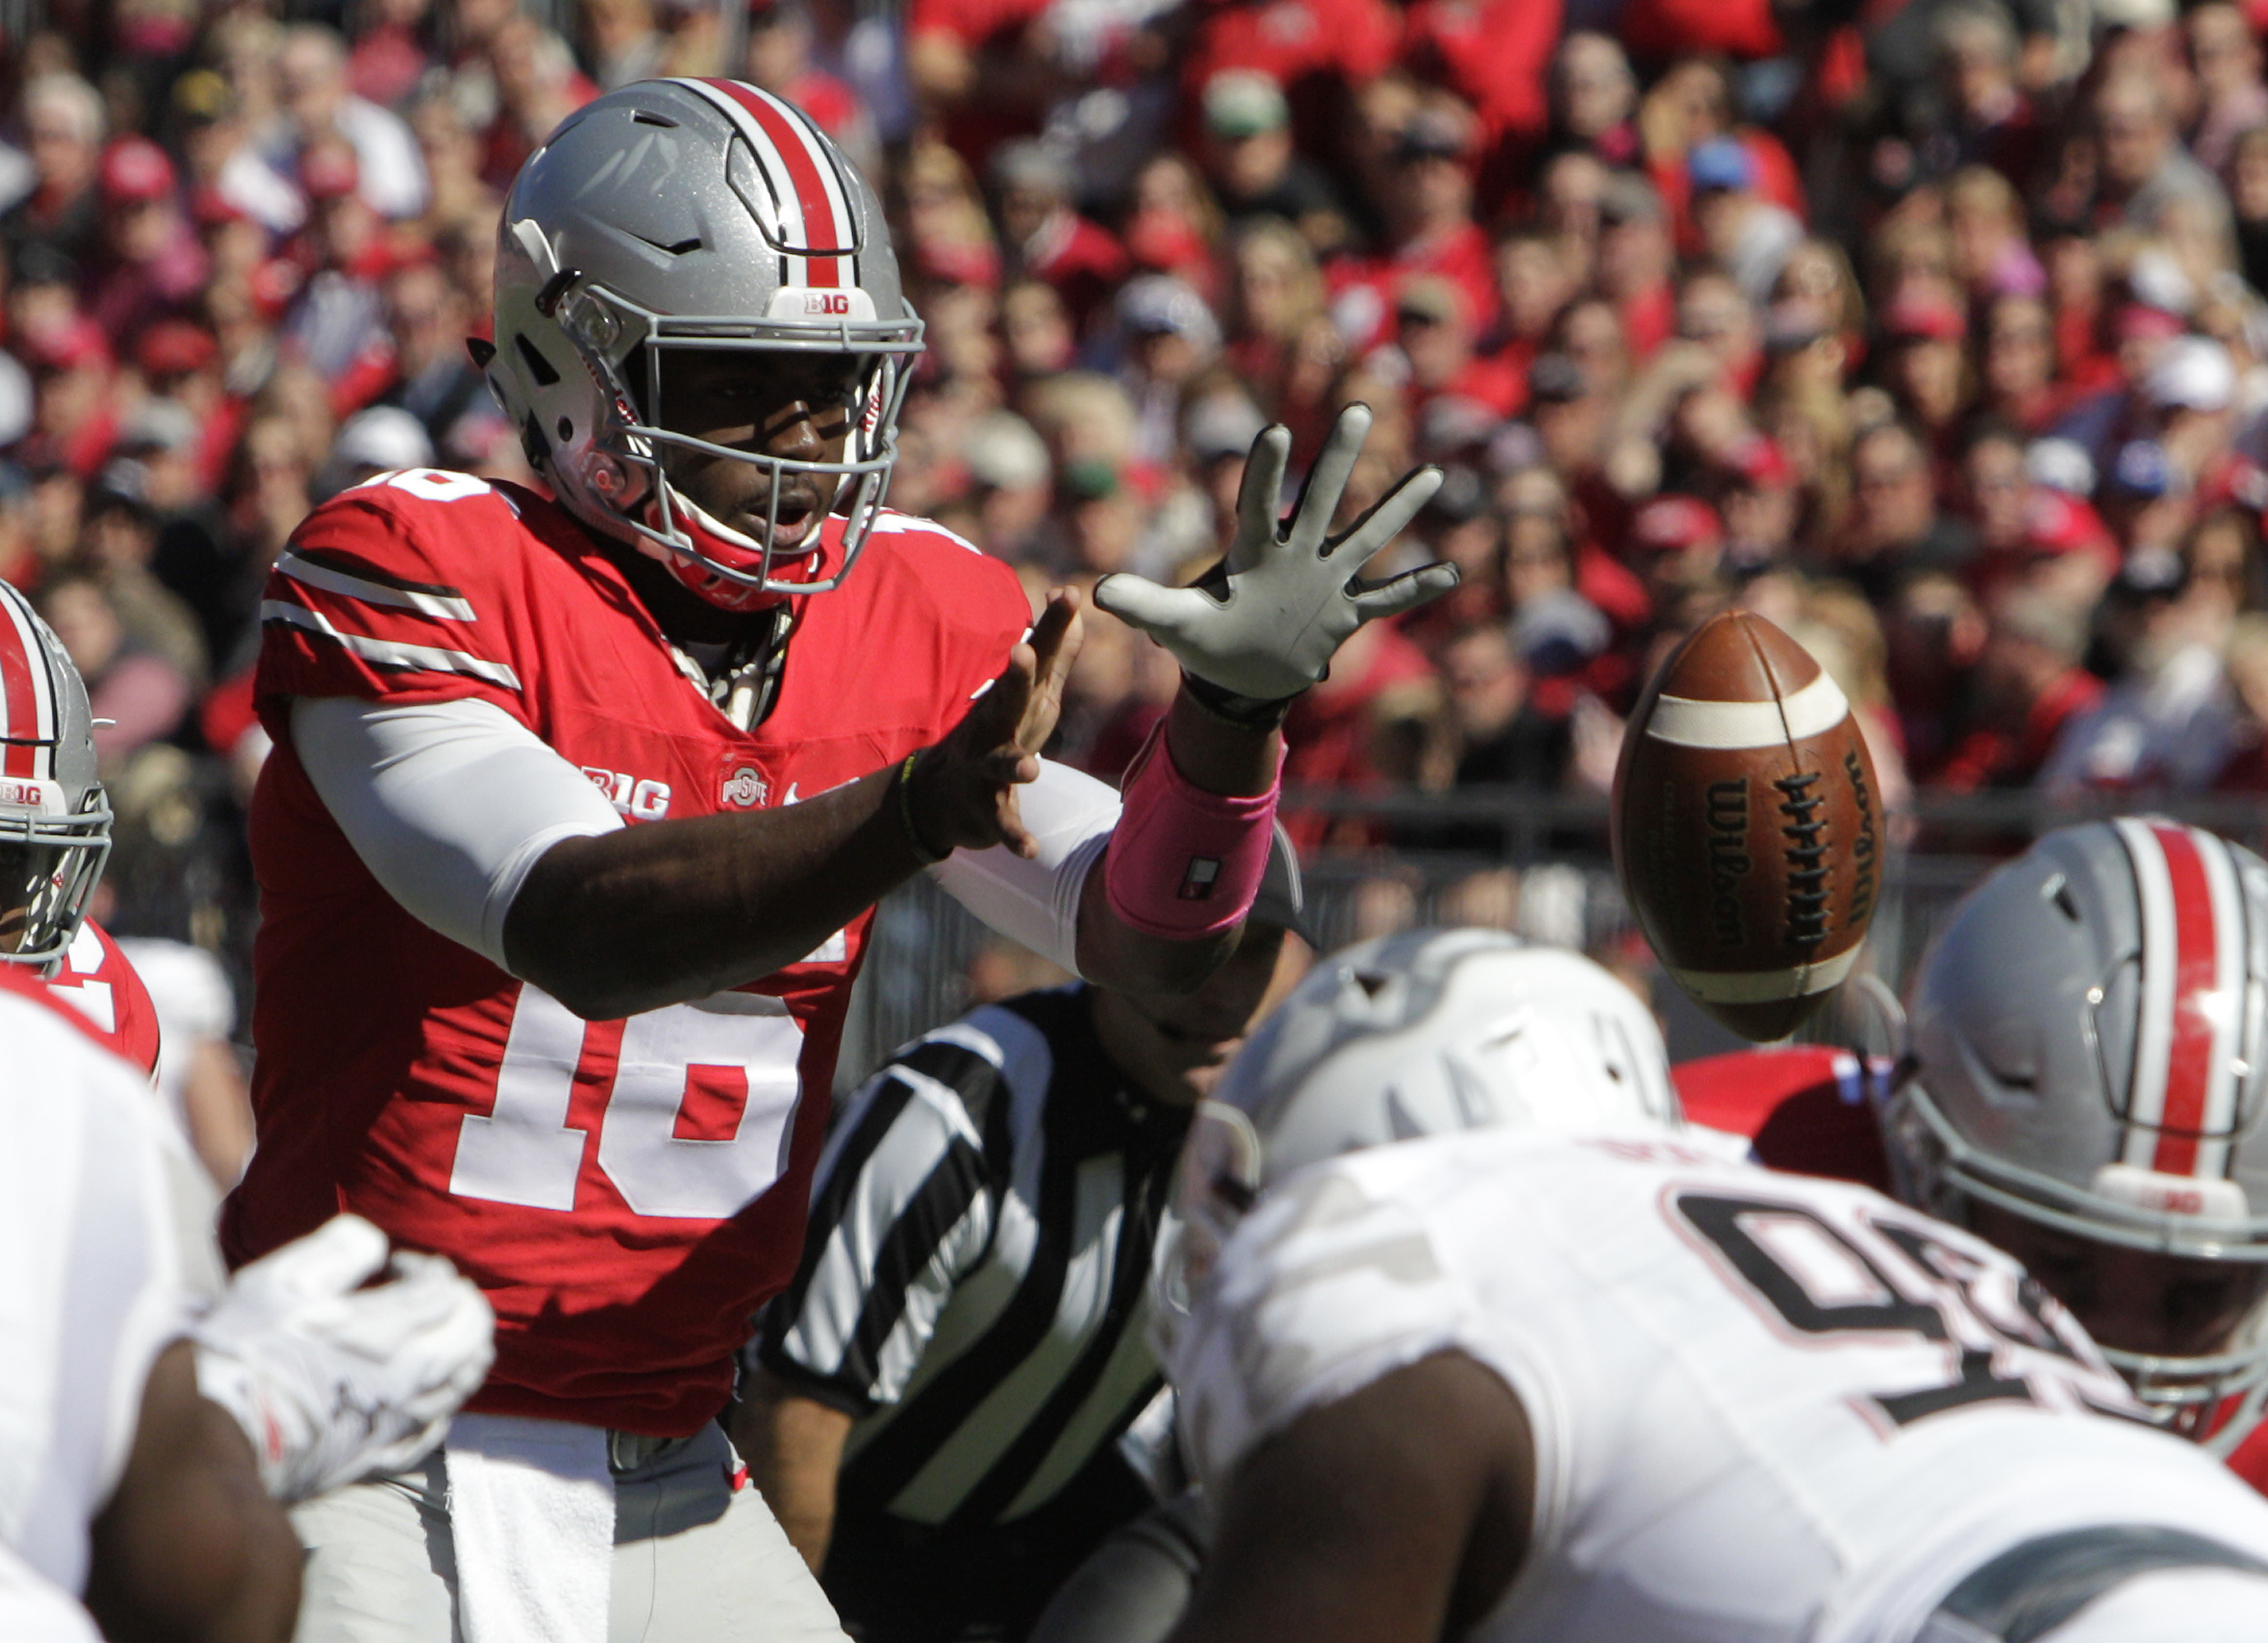 Ohio State quarterback J.T. Barrett takes a snap against Maryland during the second quarter of an NCAA college football game Saturday, Oct. 10, 2015, in Columbus, Ohio. (AP Photo/Jay LaPrete)